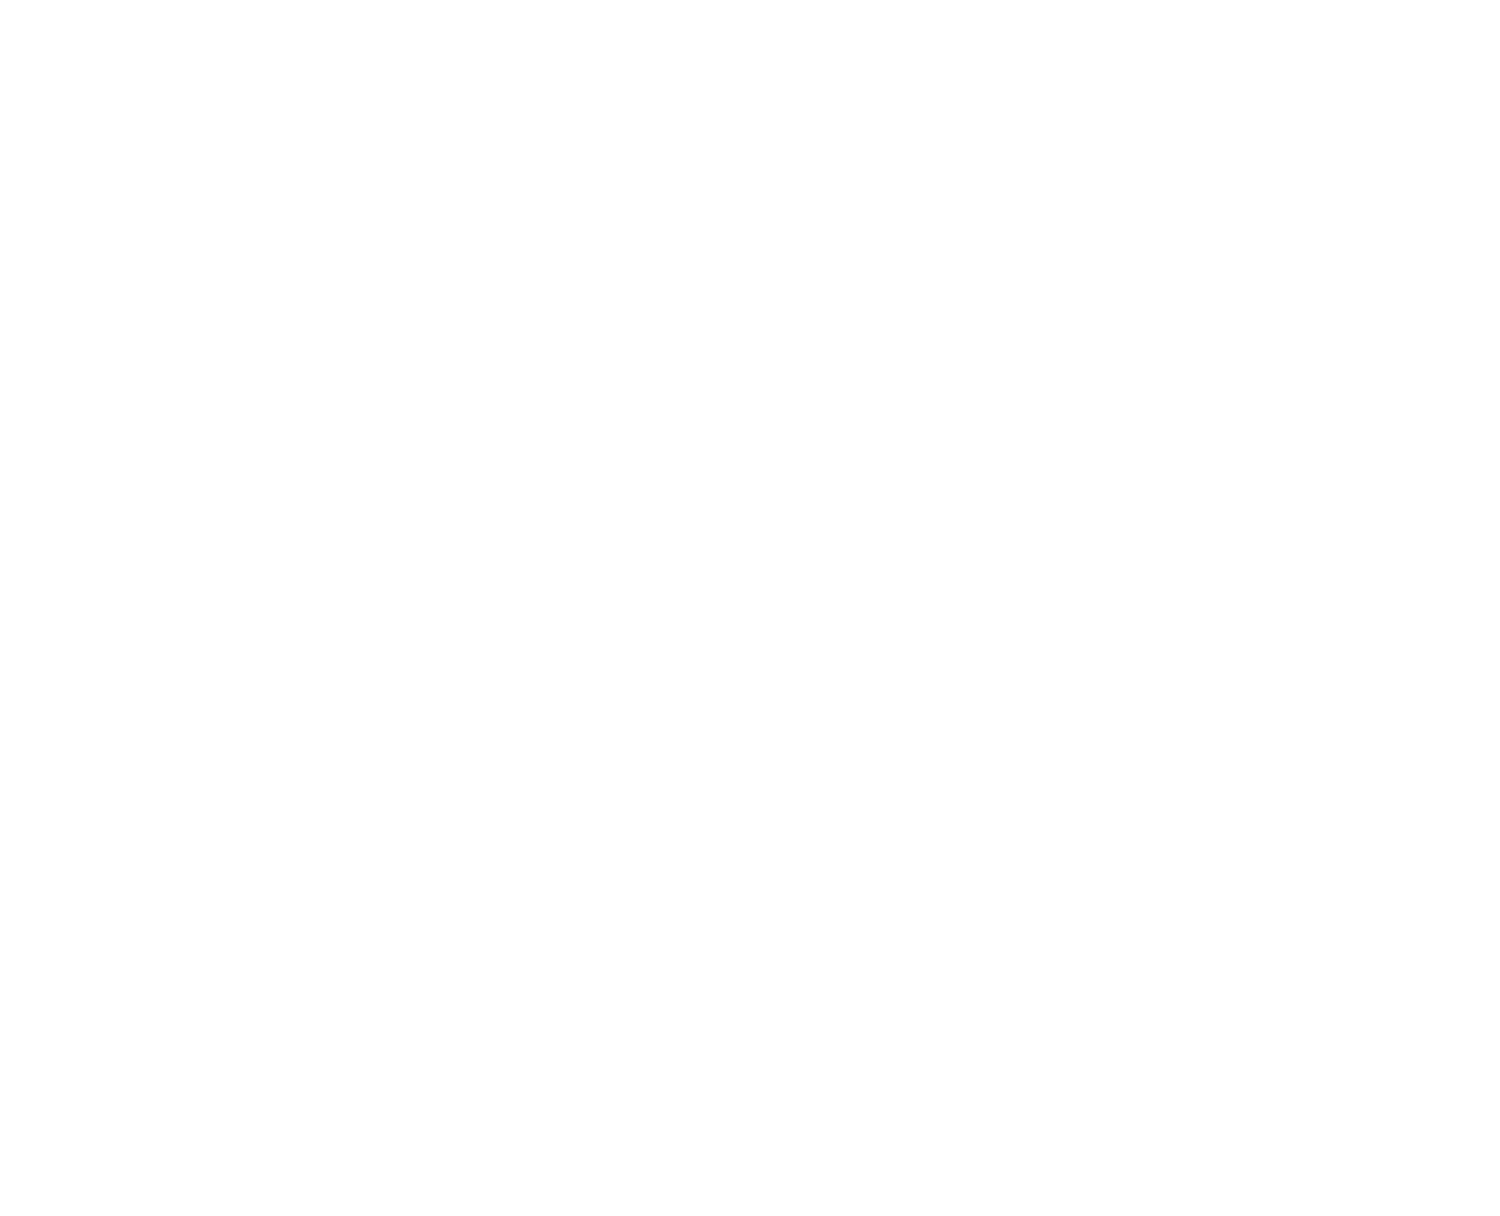 Pampered & Pretty | Bridal Hair and Makeup | Charleston, SC